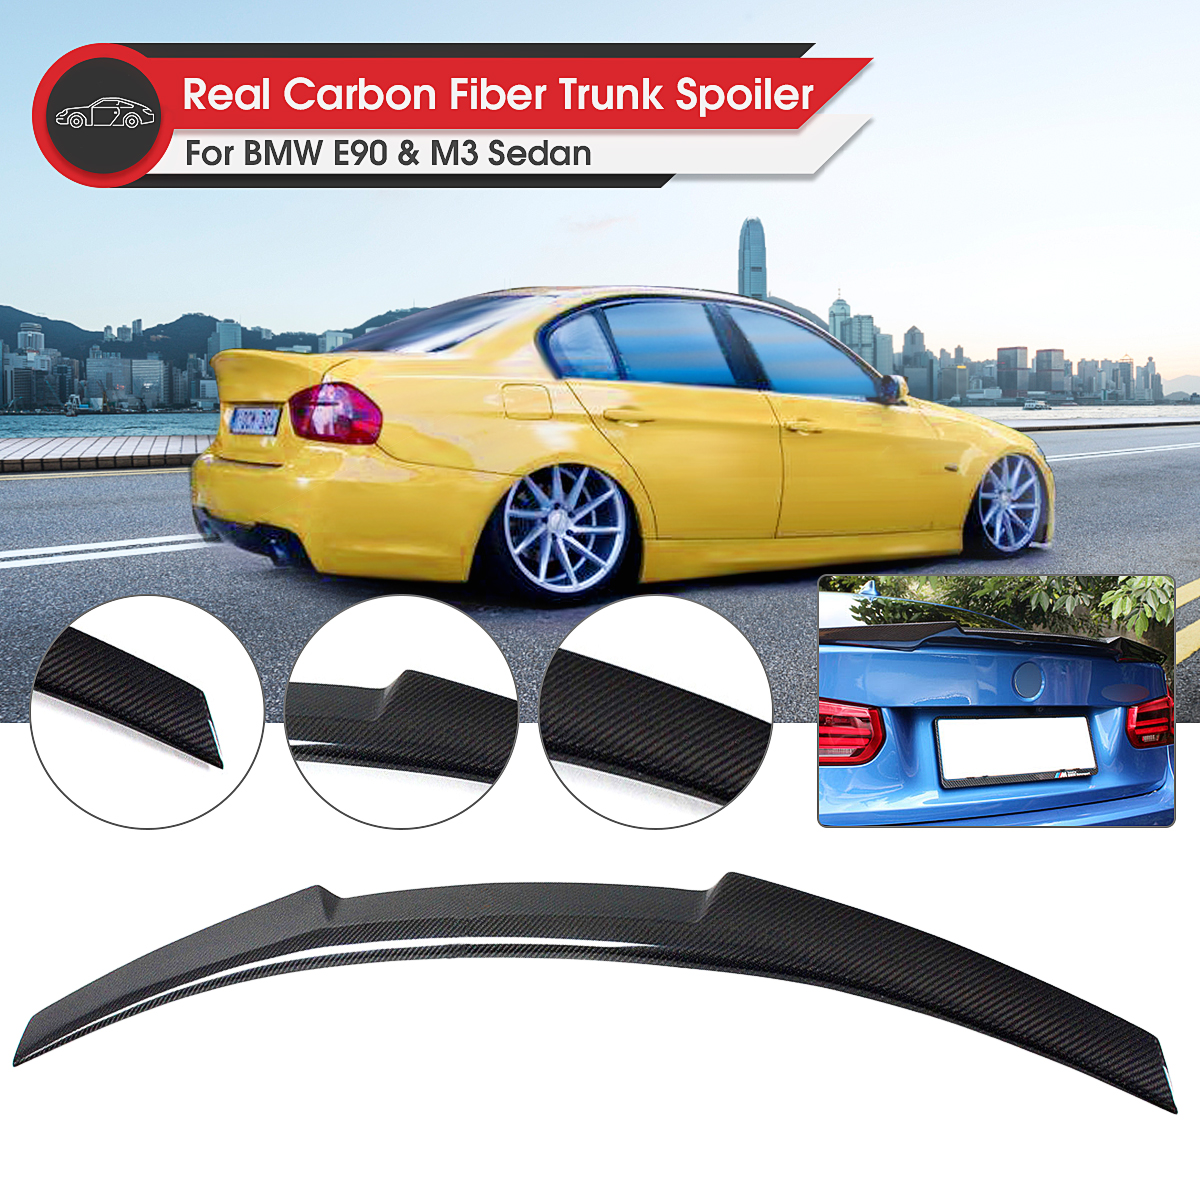 Carbon Rear Trunk Lid Spoiler Wing Lip Spoiler Wing-M4 Style Rear for BMW E90 3 Series 4 Door Sedan 2006-2011 M3 2008-2012 image